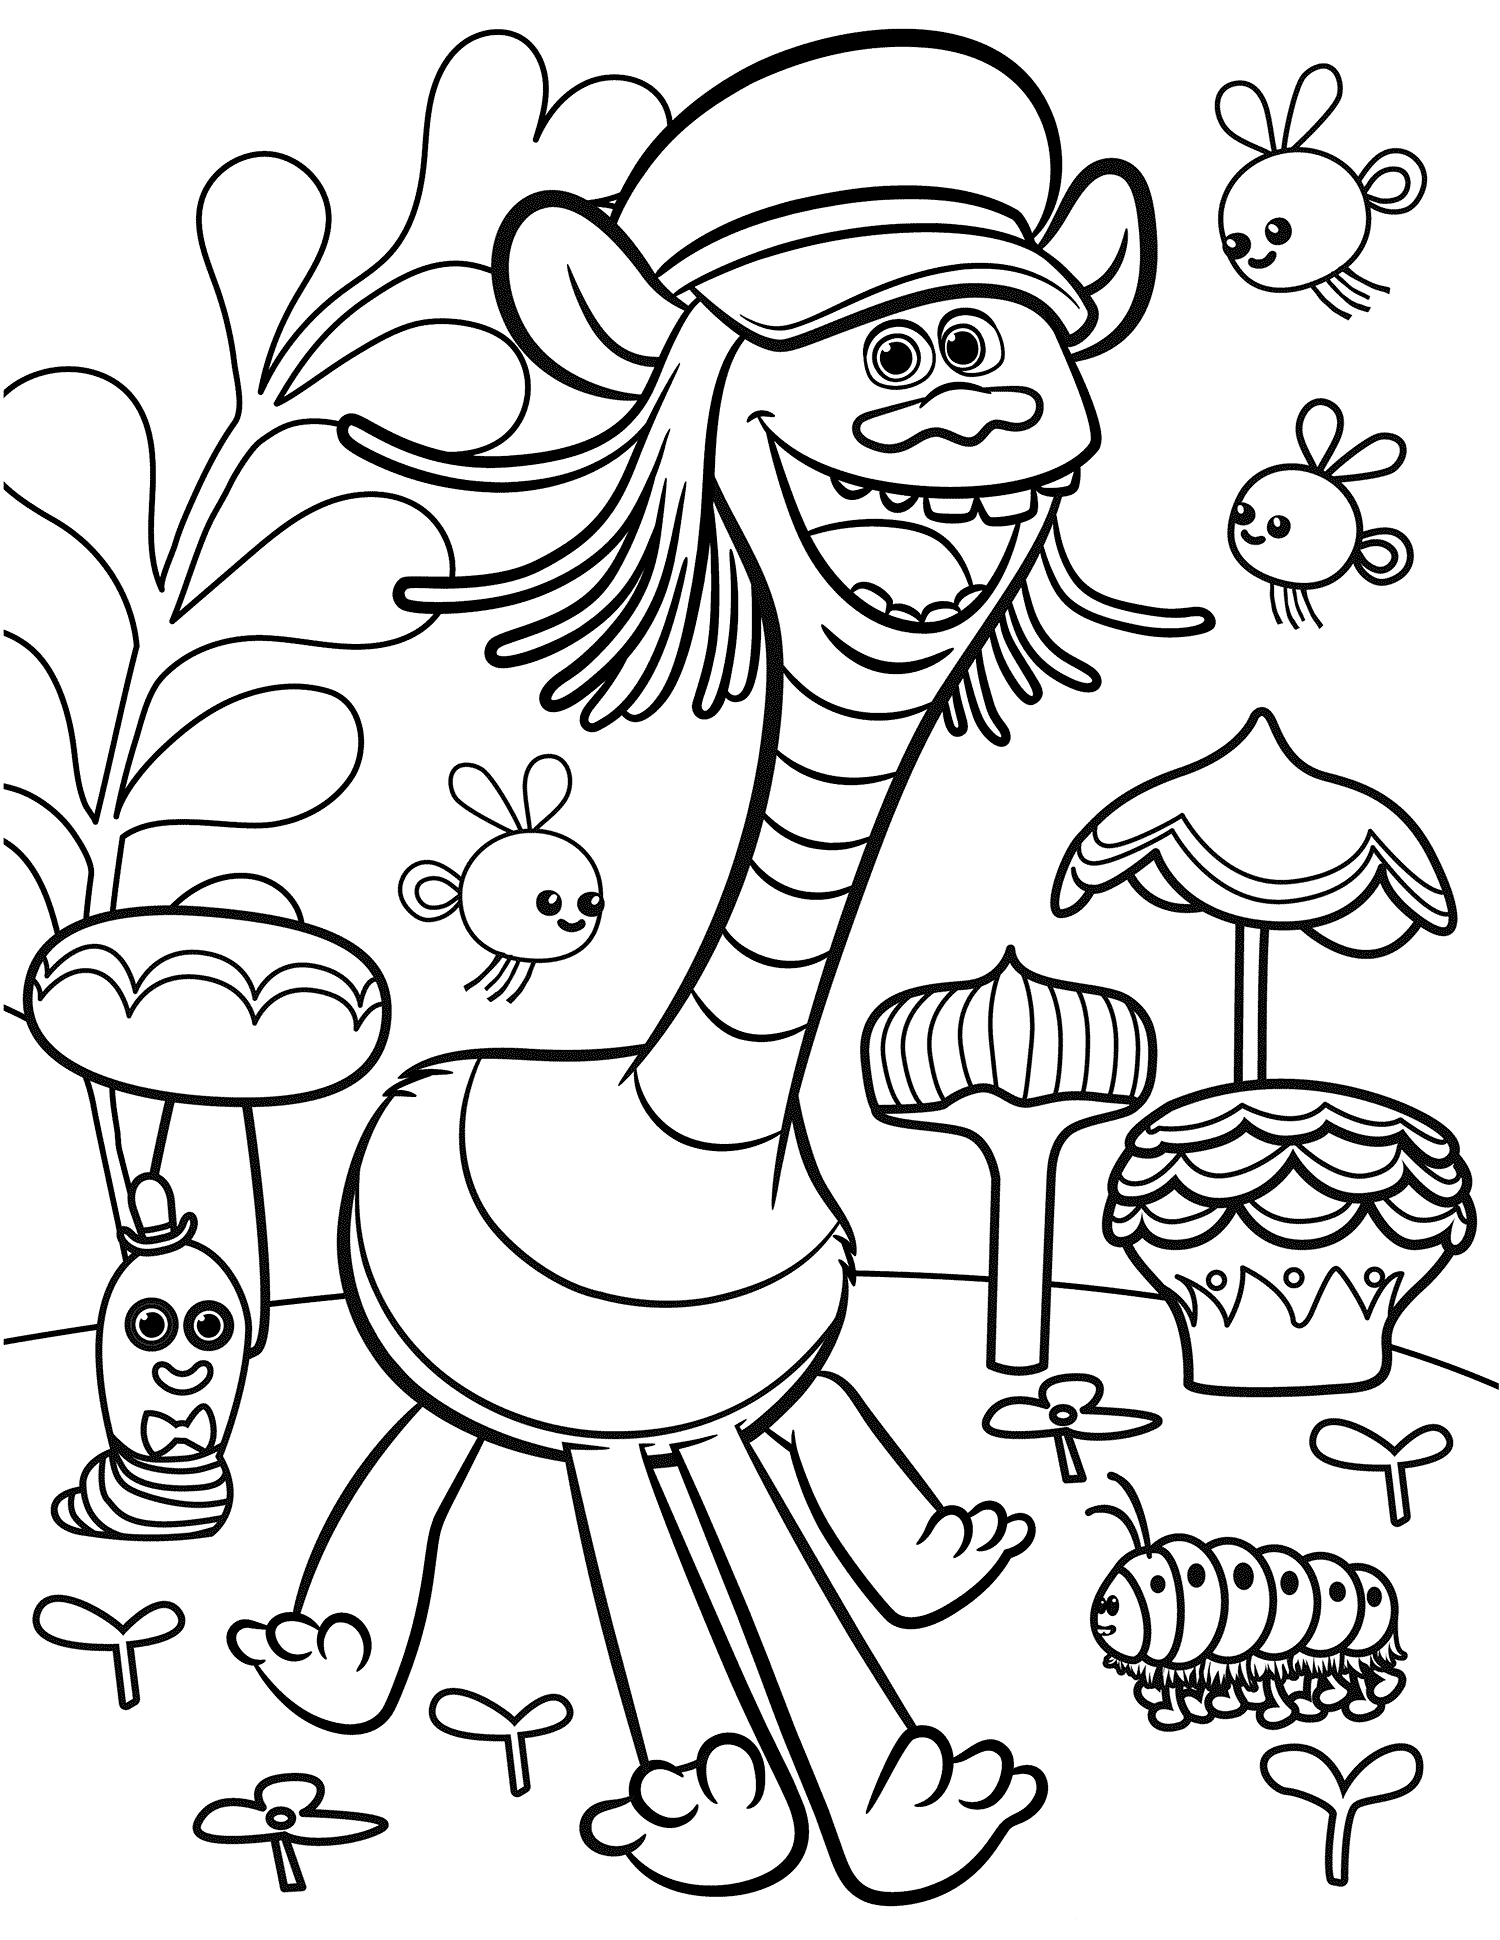 Trolls movie coloring pages best coloring pages for kids for Coloring page book